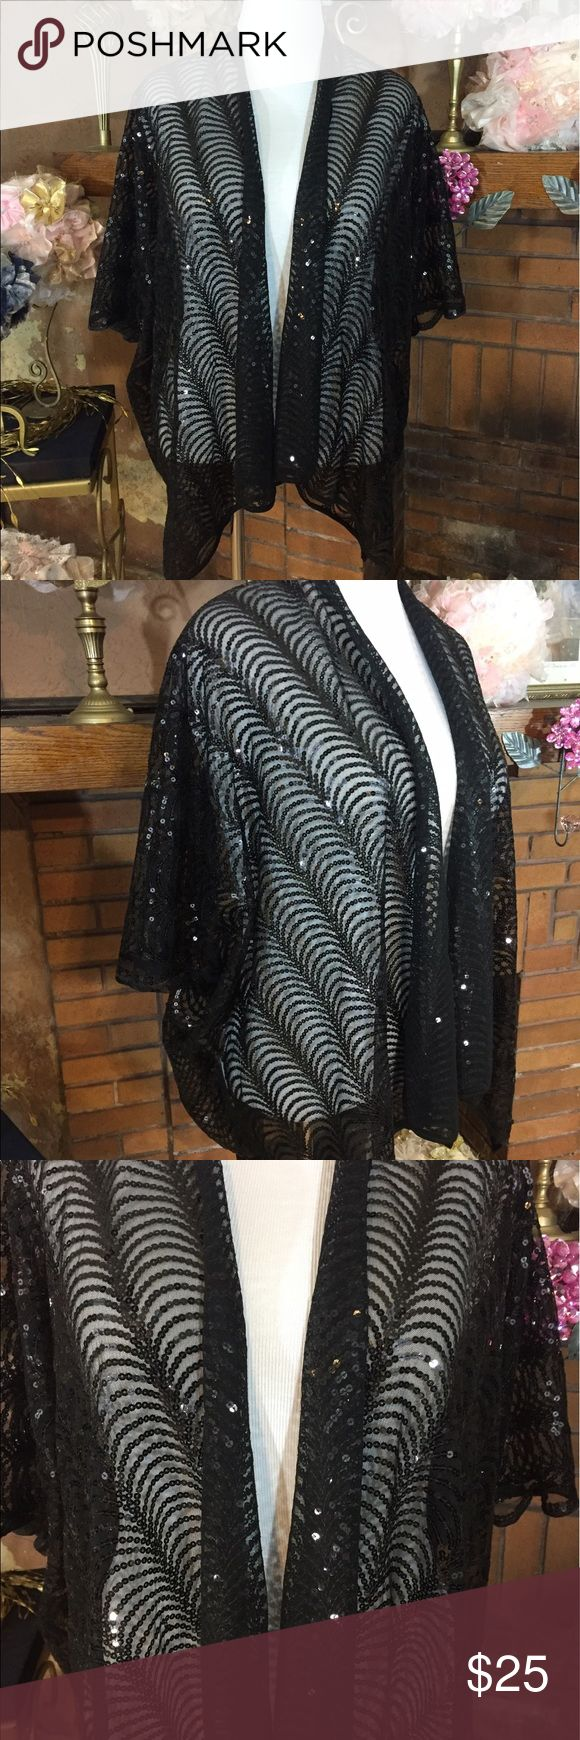 Cejon black sheer sequin cardigan Cejon black sheer sequin cardigan One Size Fits Most. 100% Polyester. Approx 28 inches long. There are flowy sleeves. Would be great with a formal dress or even with jeans and a top for a night out. Very versatile. New with tags. Please check out all pictures. Read full description of the items. To ensure a happy shopping experience, please ask me any questions. Cejon by Nordstrom Rack Sweaters Cardigans